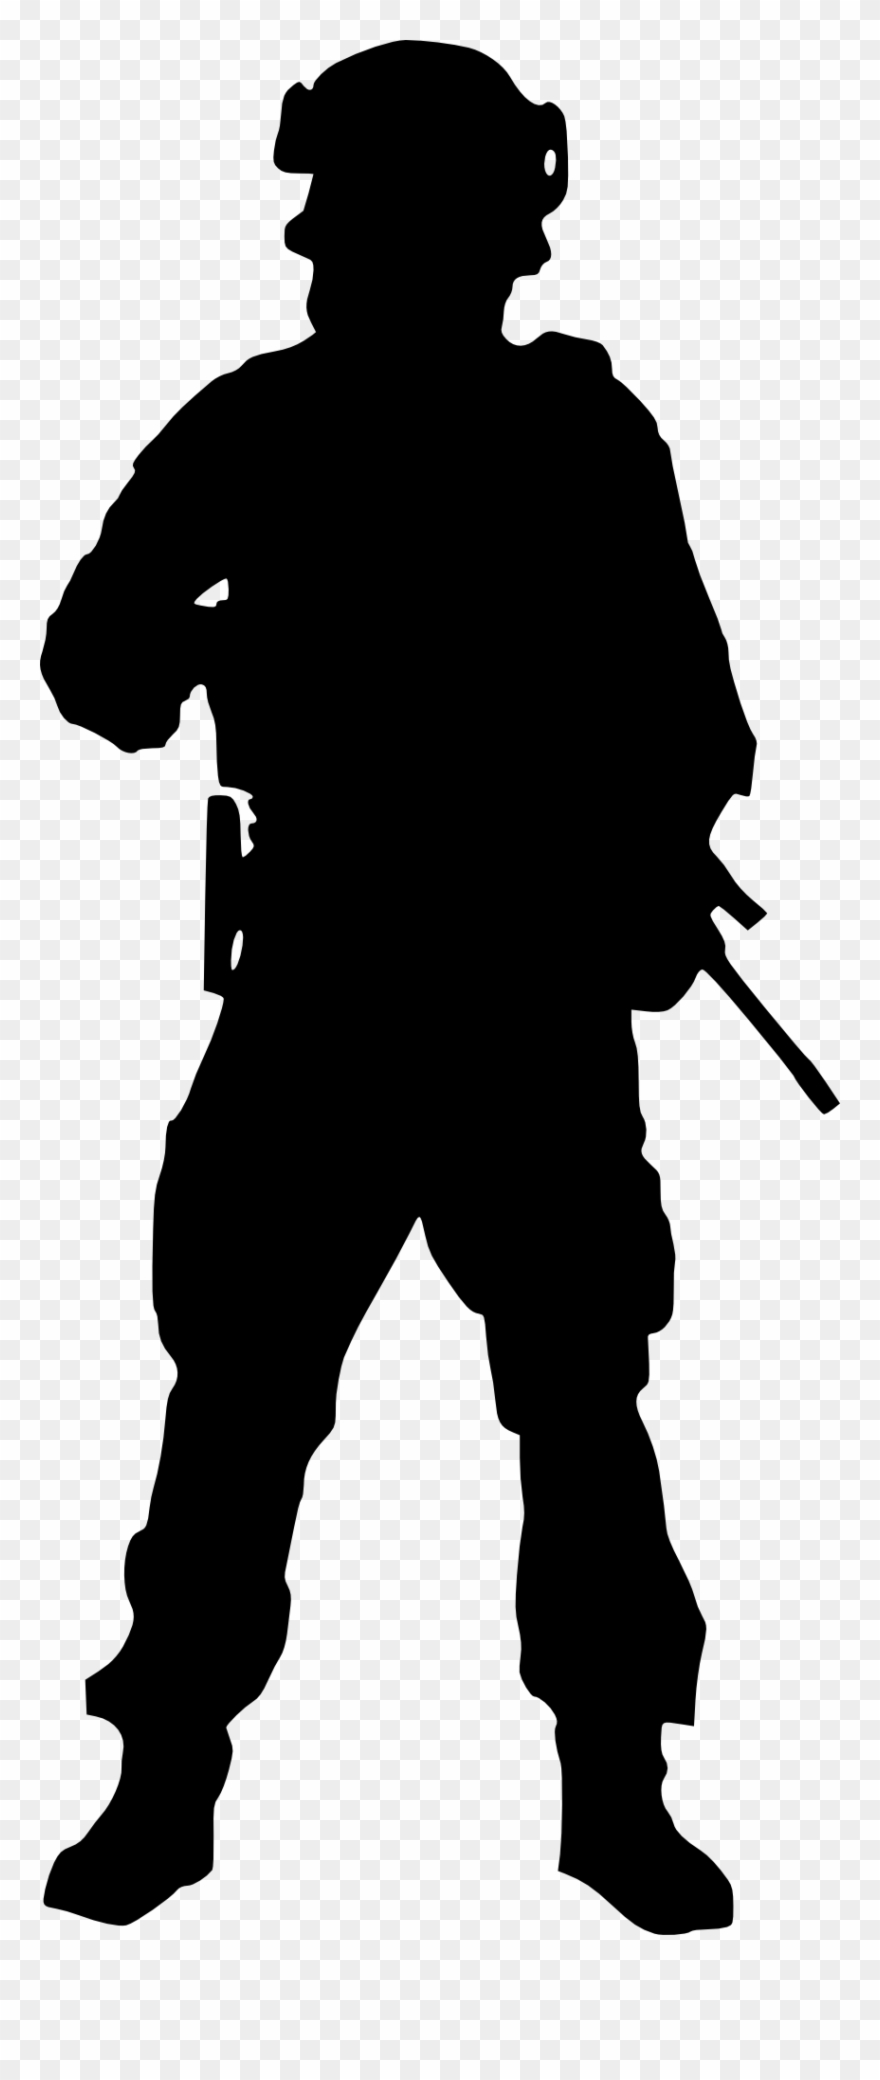 Running soldier transparent . Army clipart silhouette